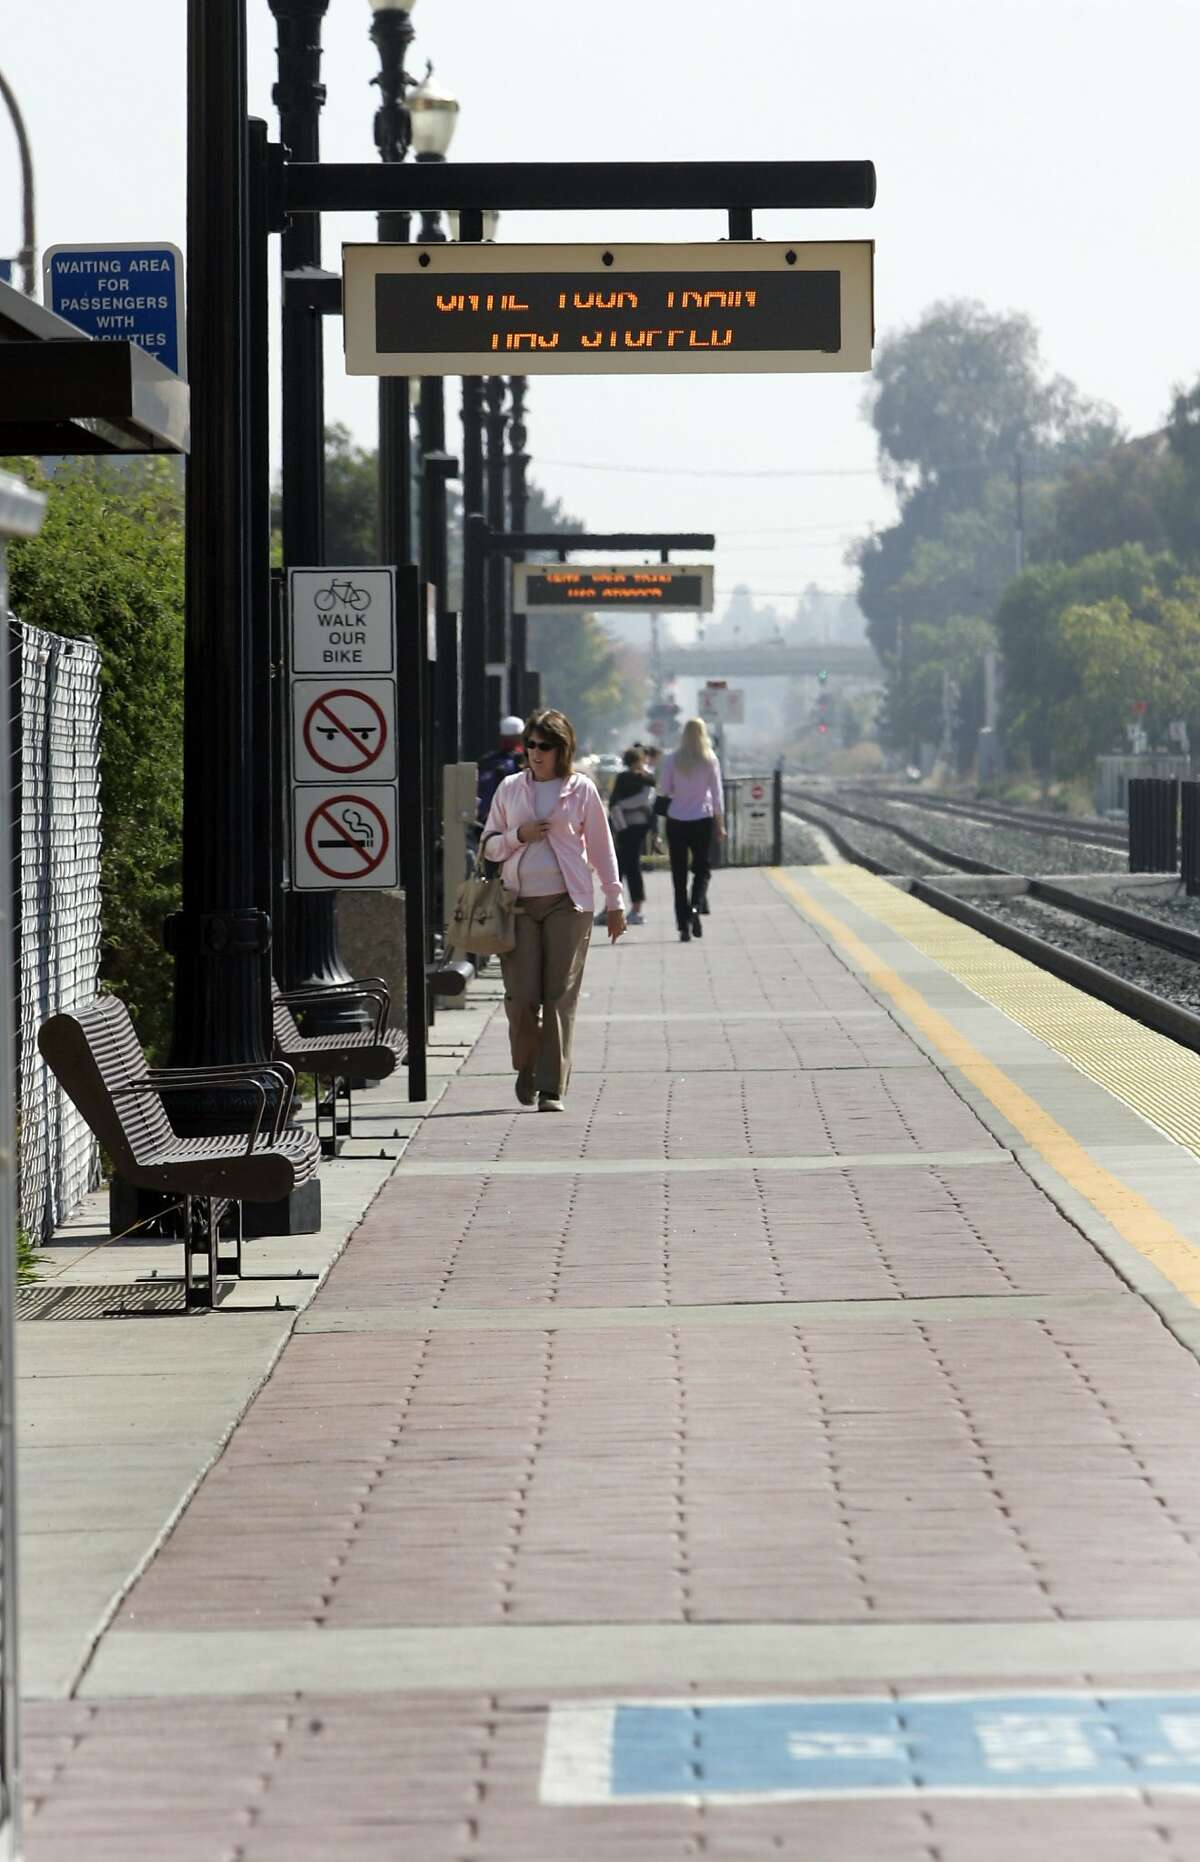 In this file photo, people walking about at the Caltrain station in Redwood City.